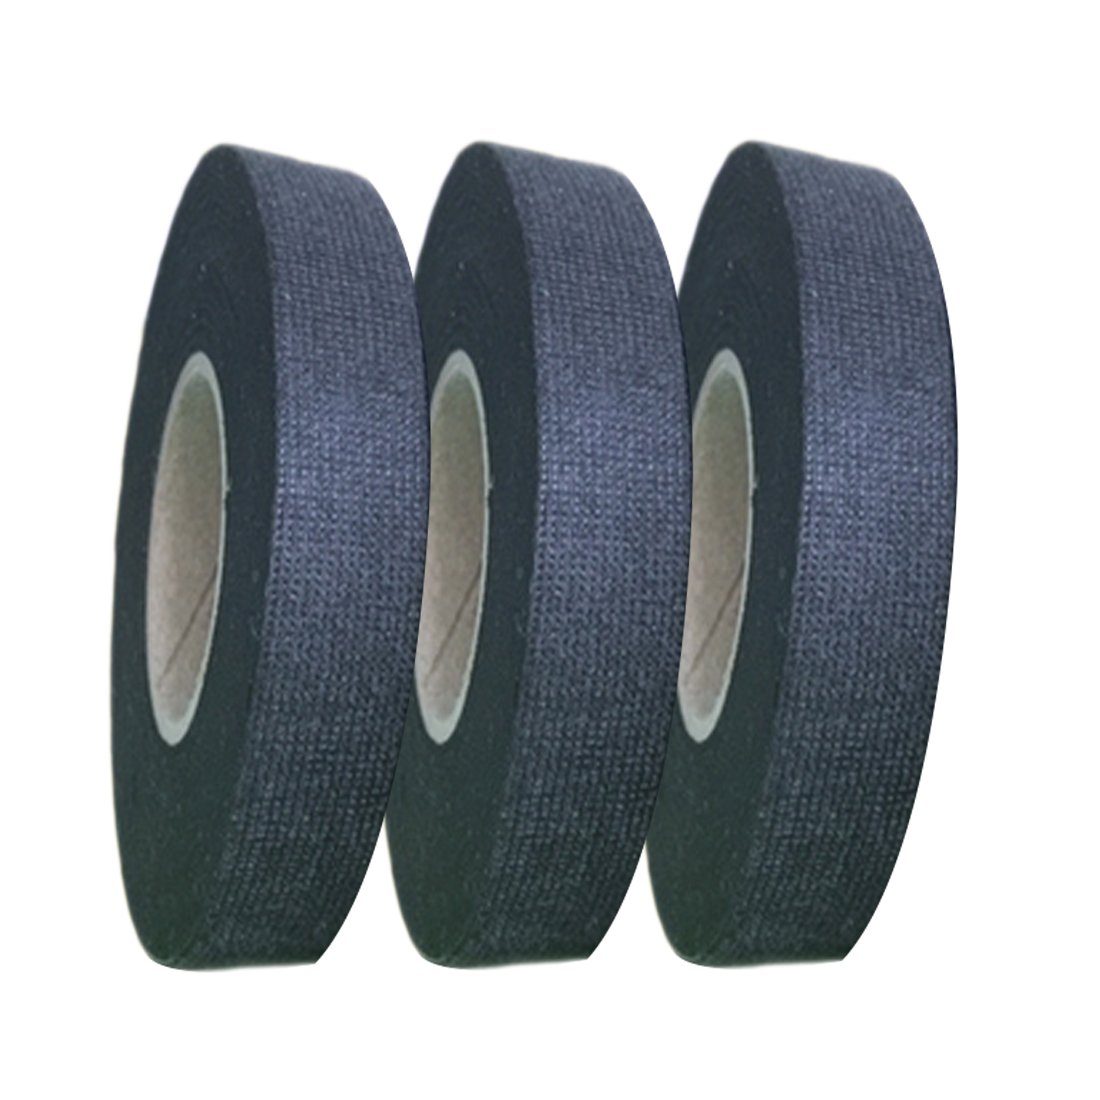 High 1pc Heat-resistant 19mm x 15m Adhesive Flannel Fabric Cloth Tape Cable Harness Wiring For Car Auto Repair Parts Tool